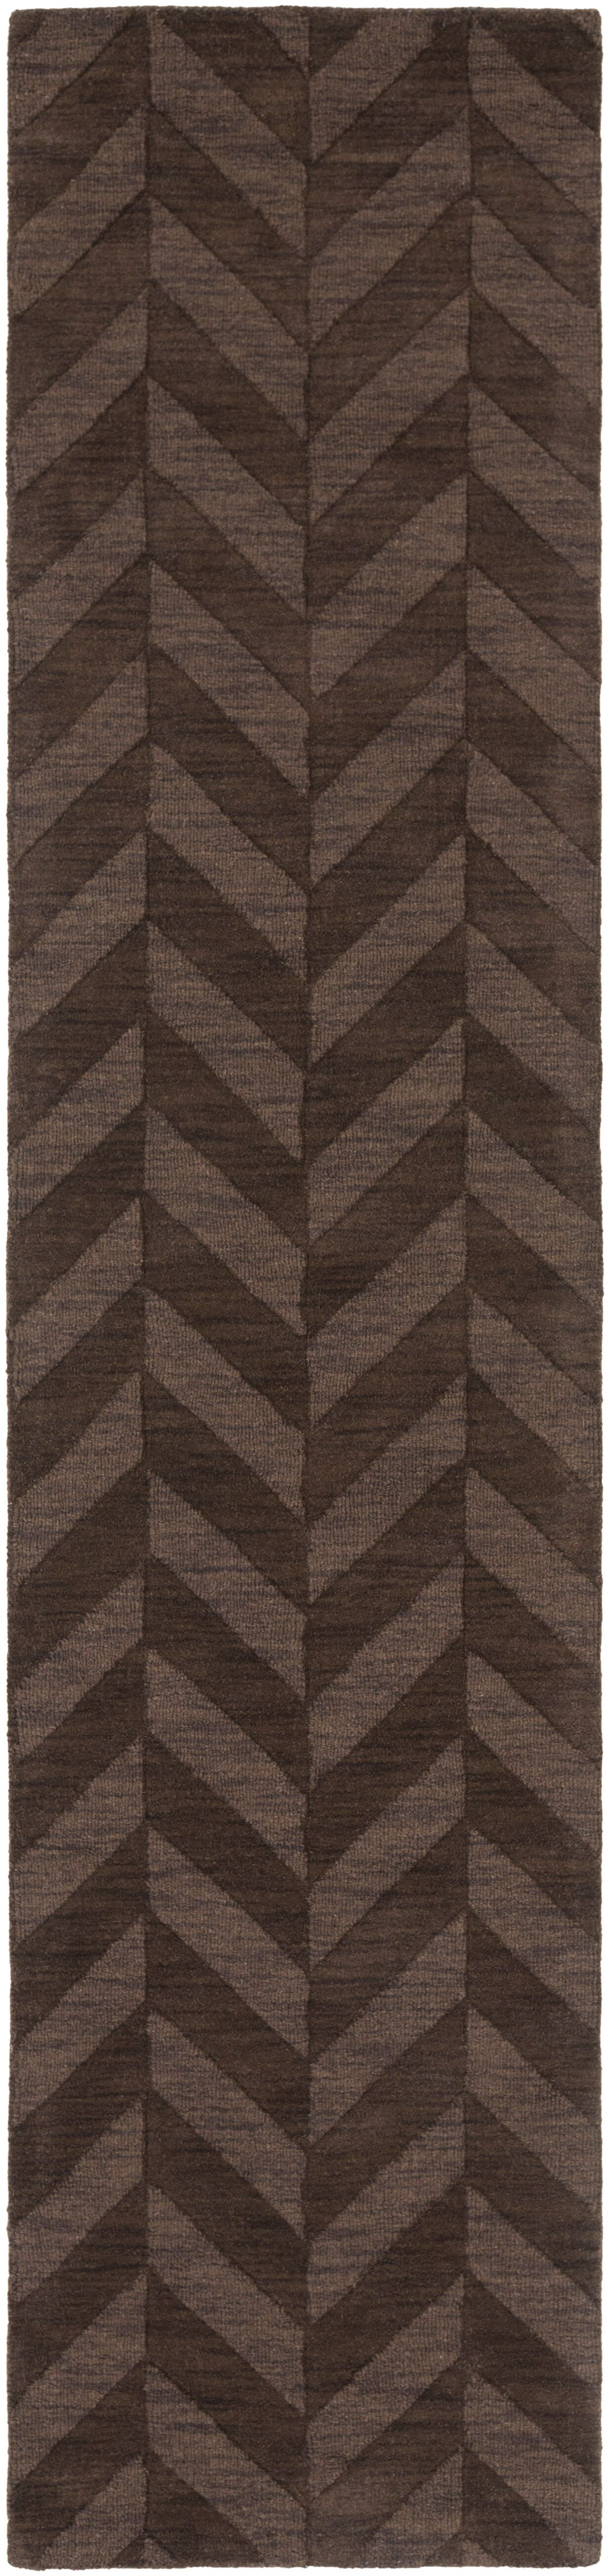 Sunburst Hand Woven Wool Brown Area Rug Rug Size: Runner 2'3